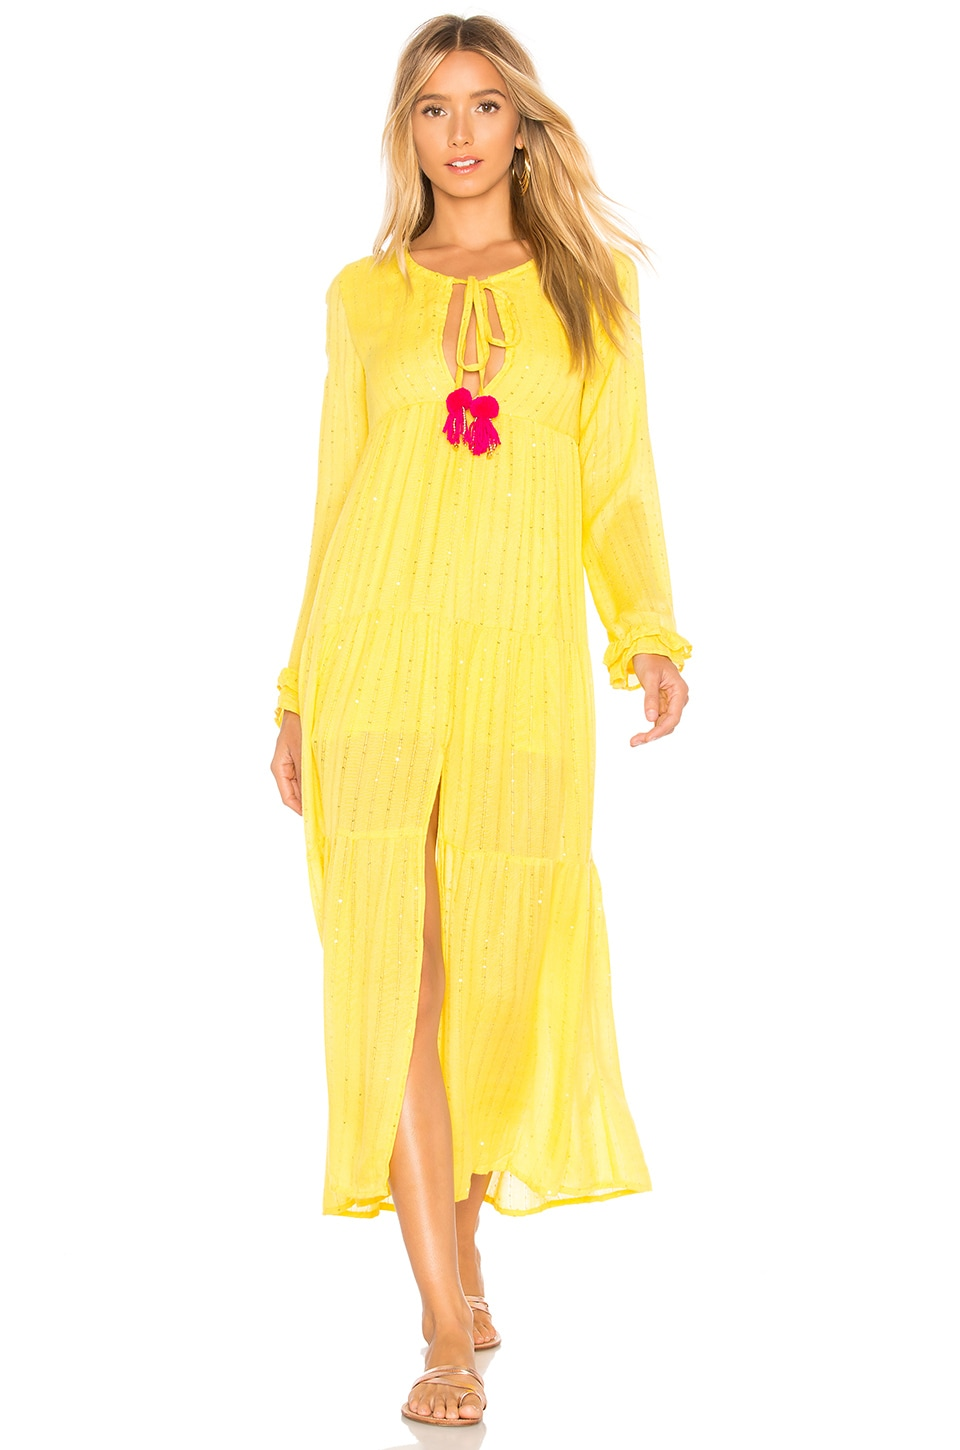 Sundress Neo Dress in Yellow